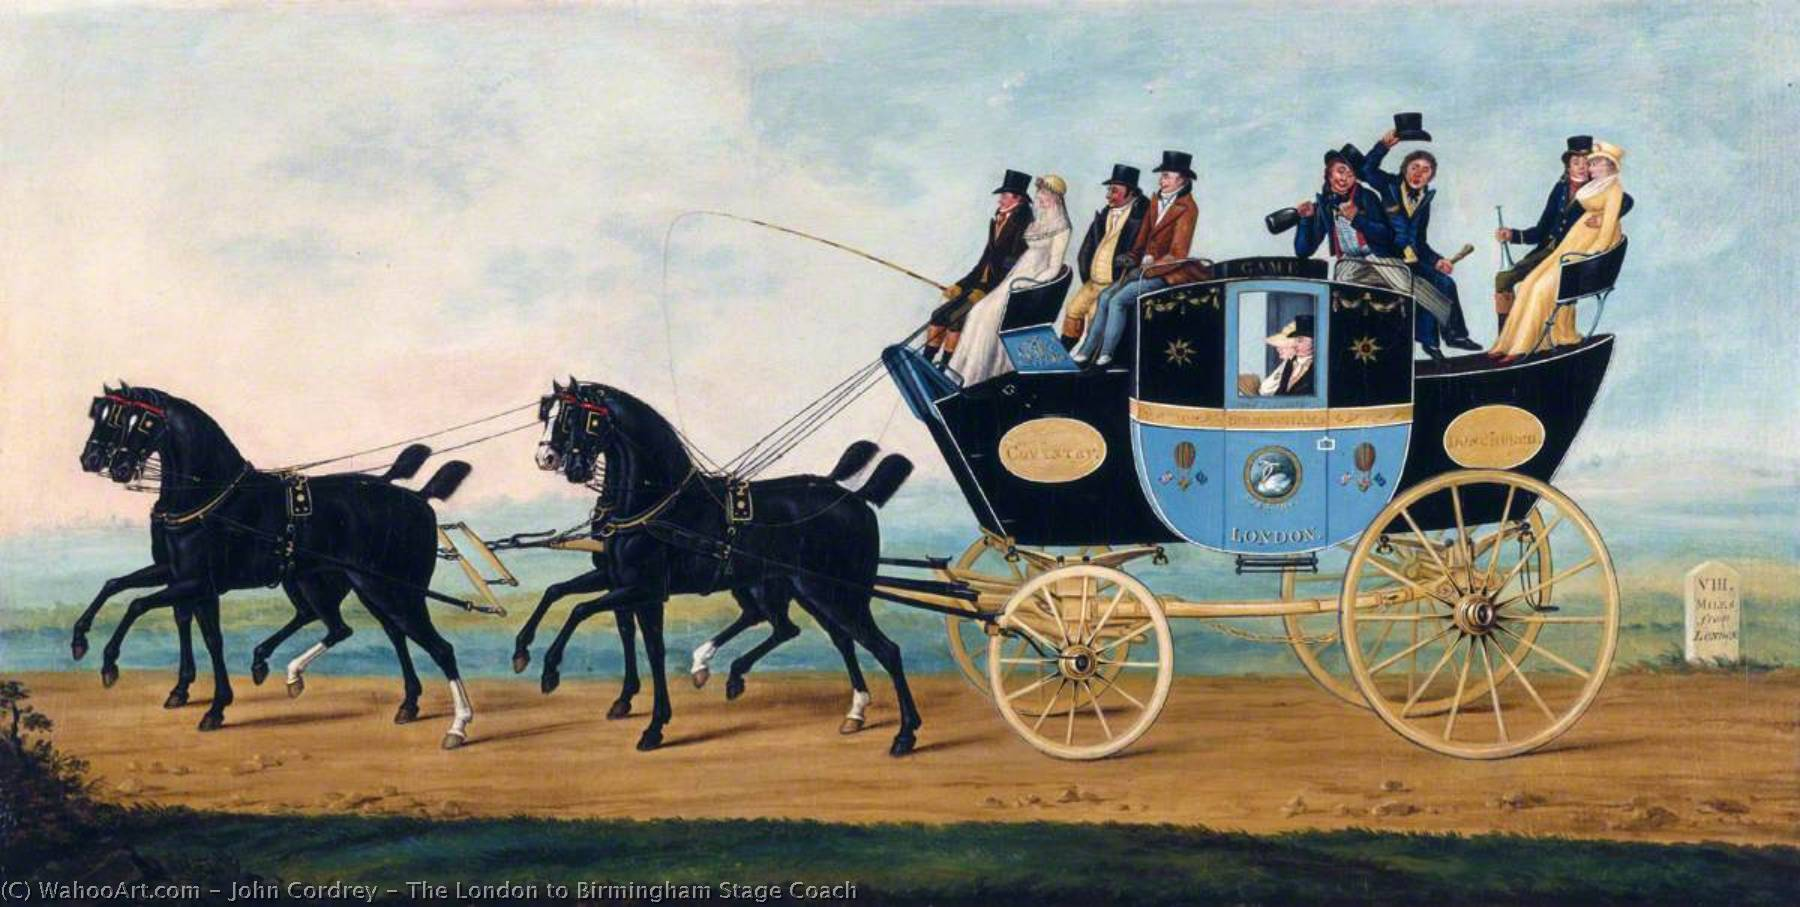 The London to Birmingham Stage Coach, 1801 by John Cordrey | Oil Painting | WahooArt.com